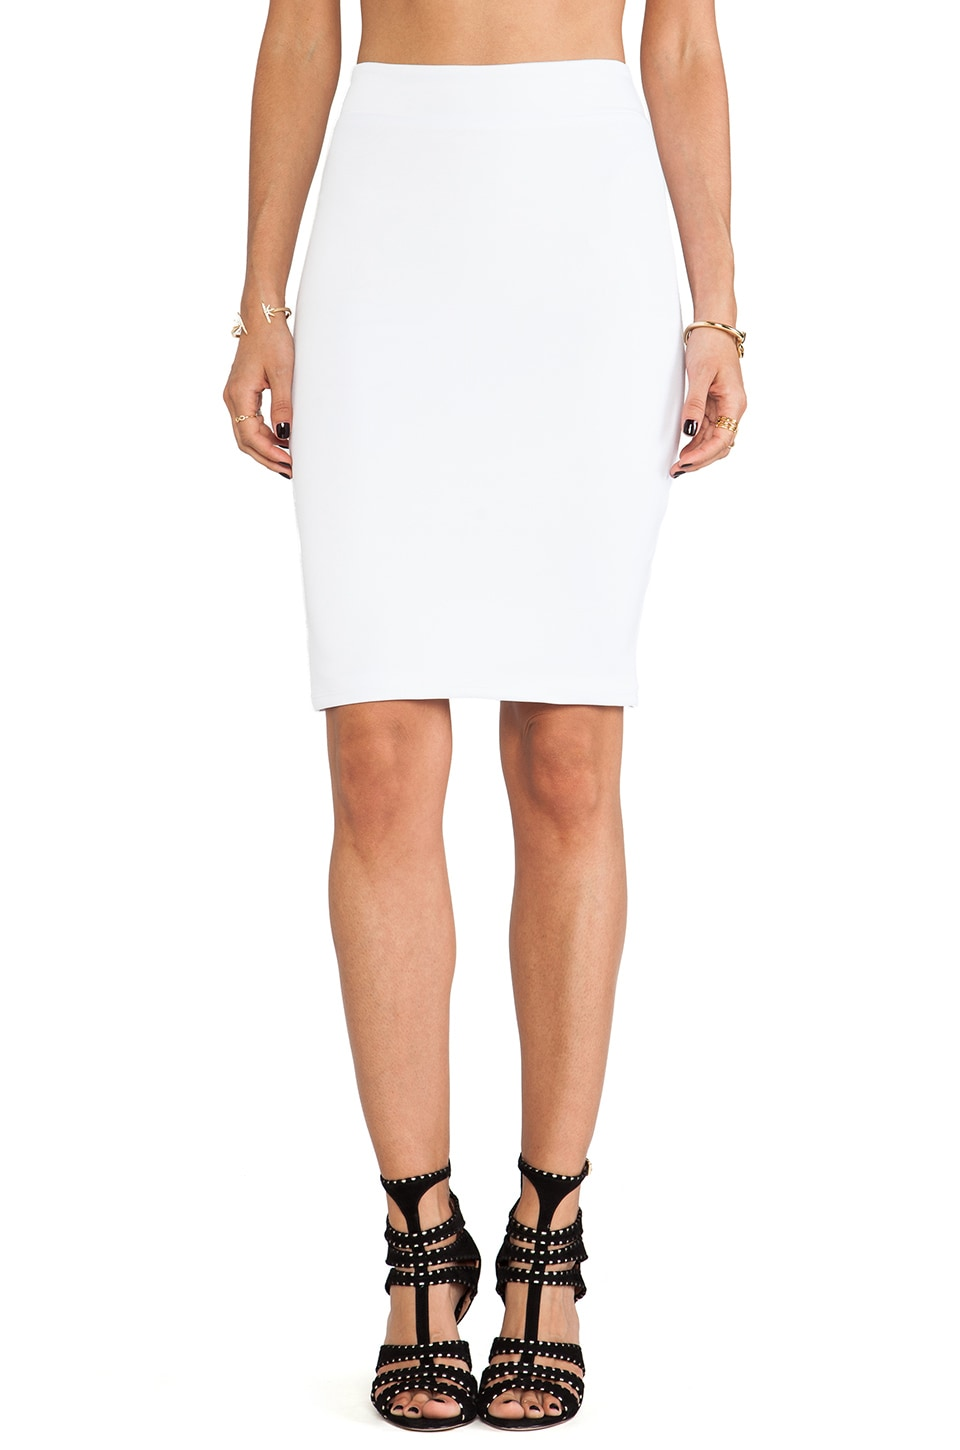 Boulee Monica Skirt in Off White